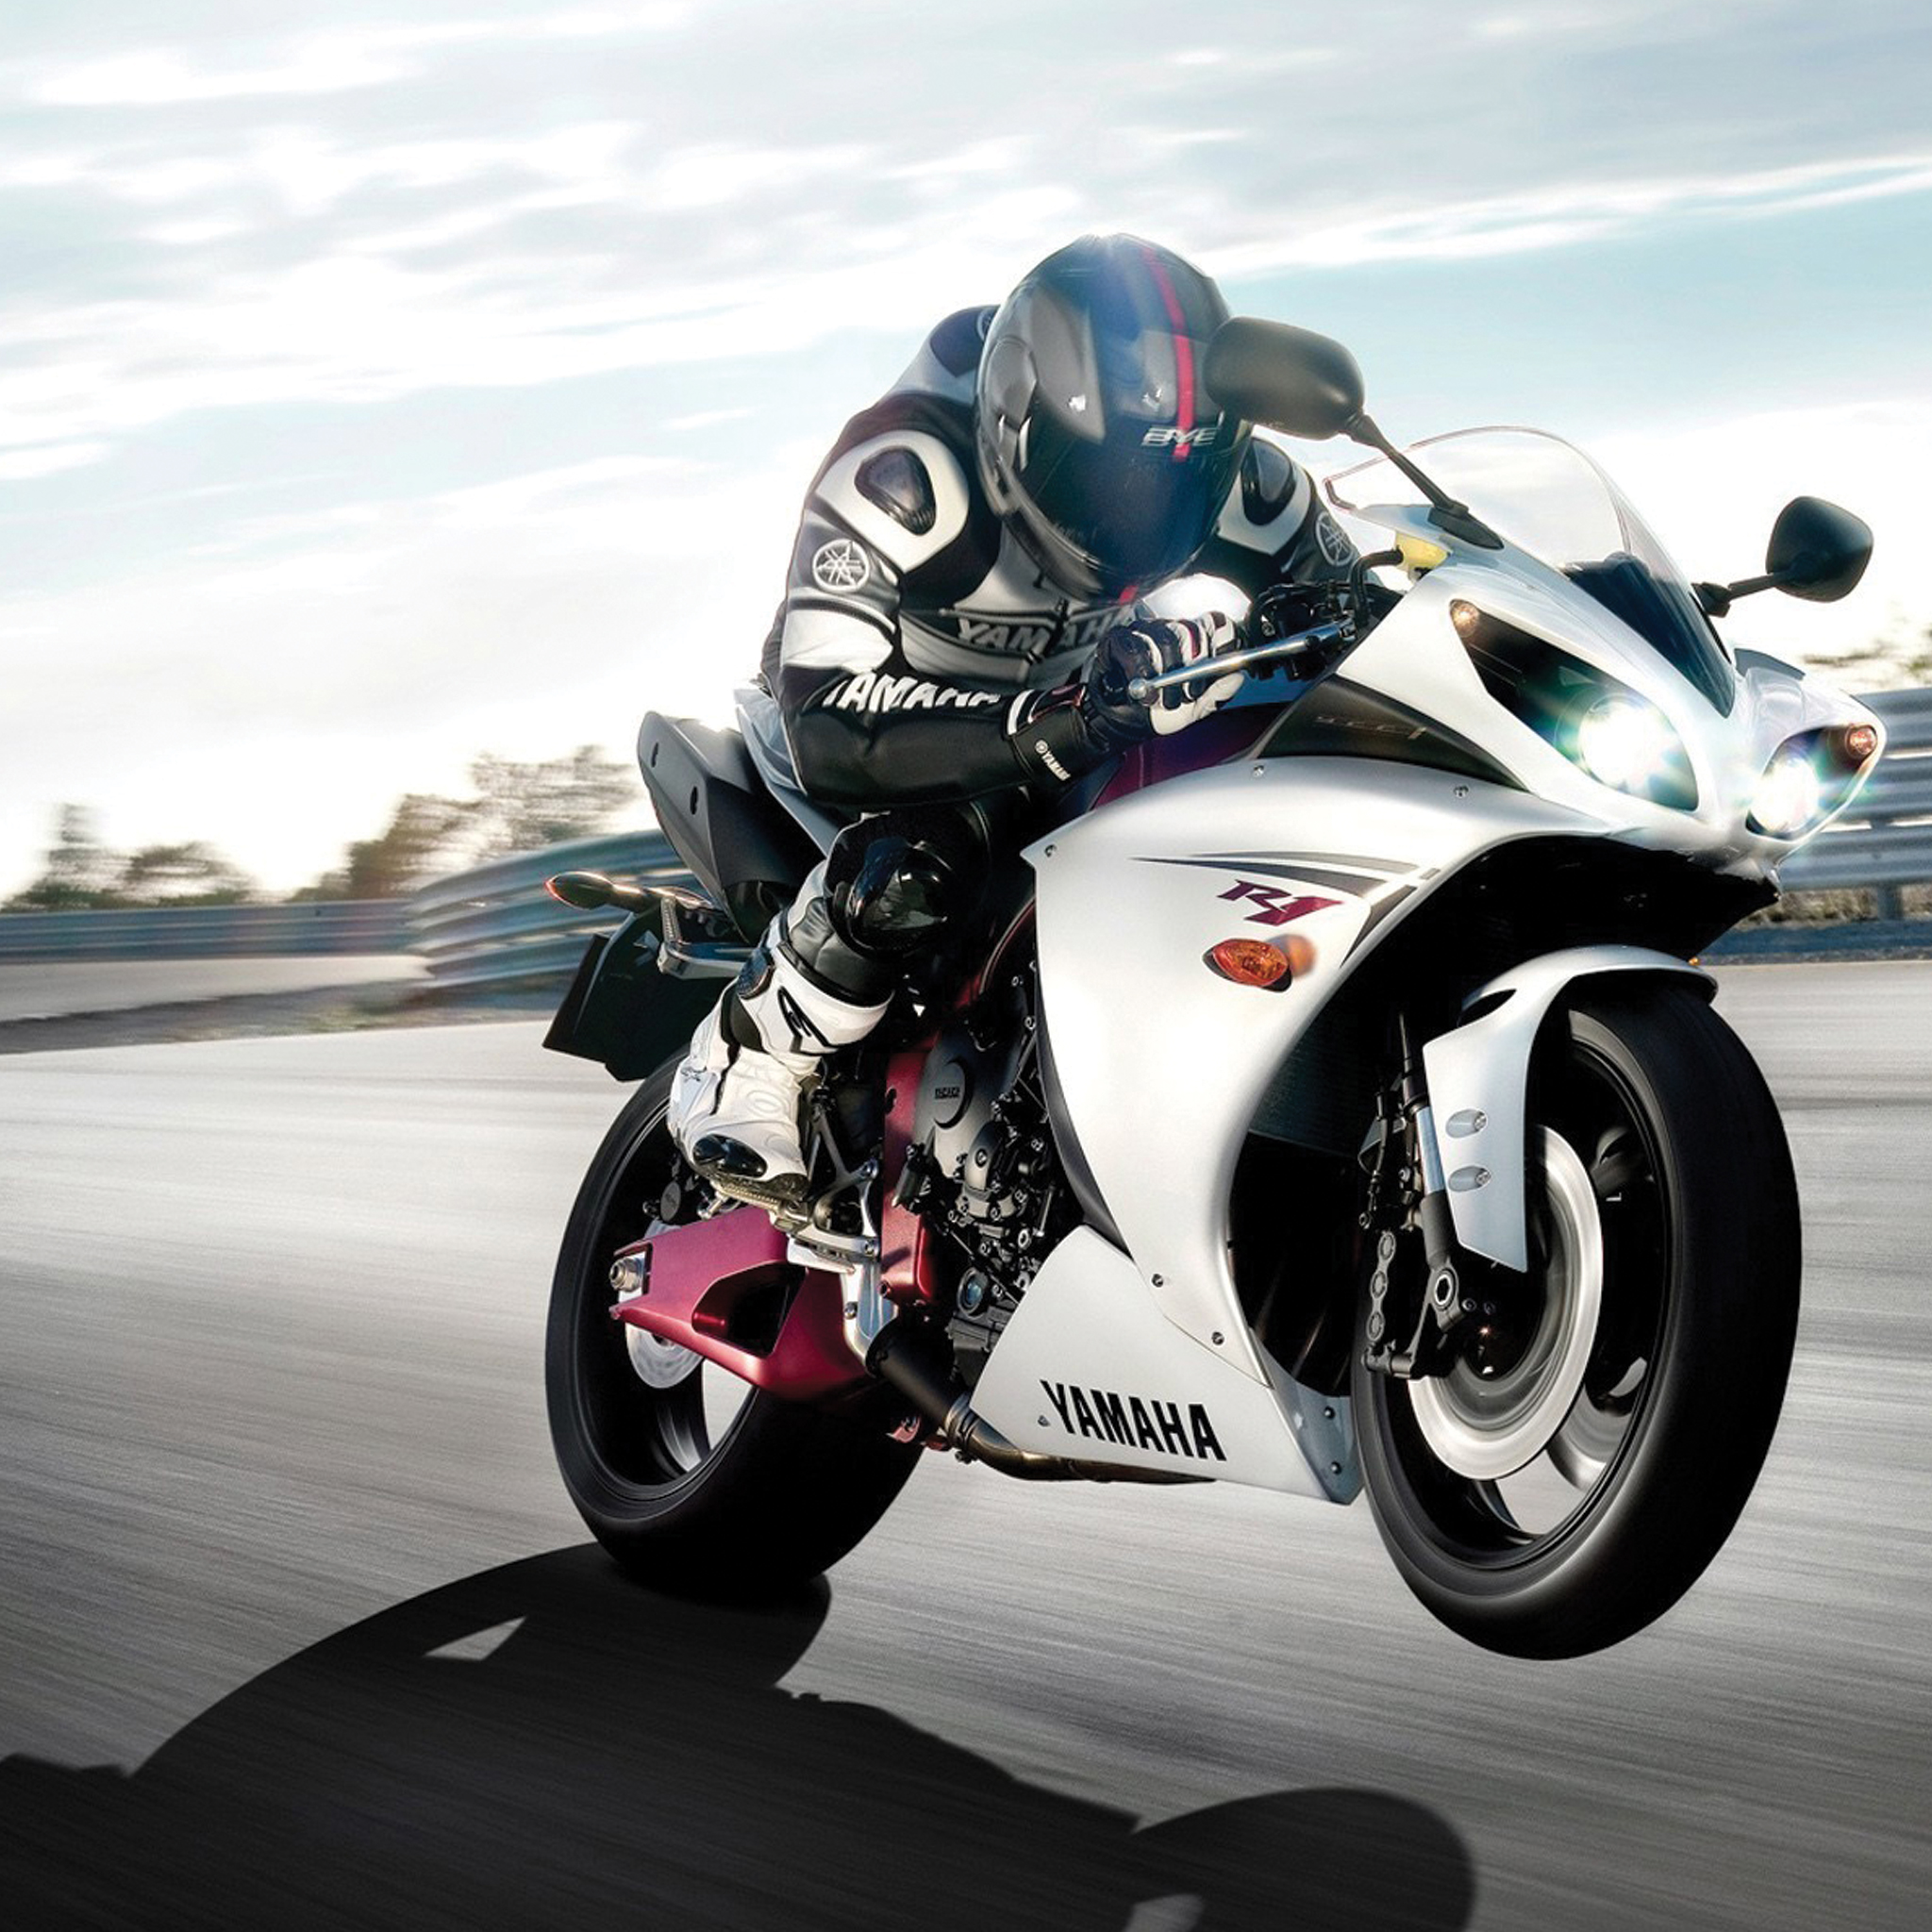 Yamaha Racer 3Wallpapers iPad Retina Yamaha Racer   iPad Retina